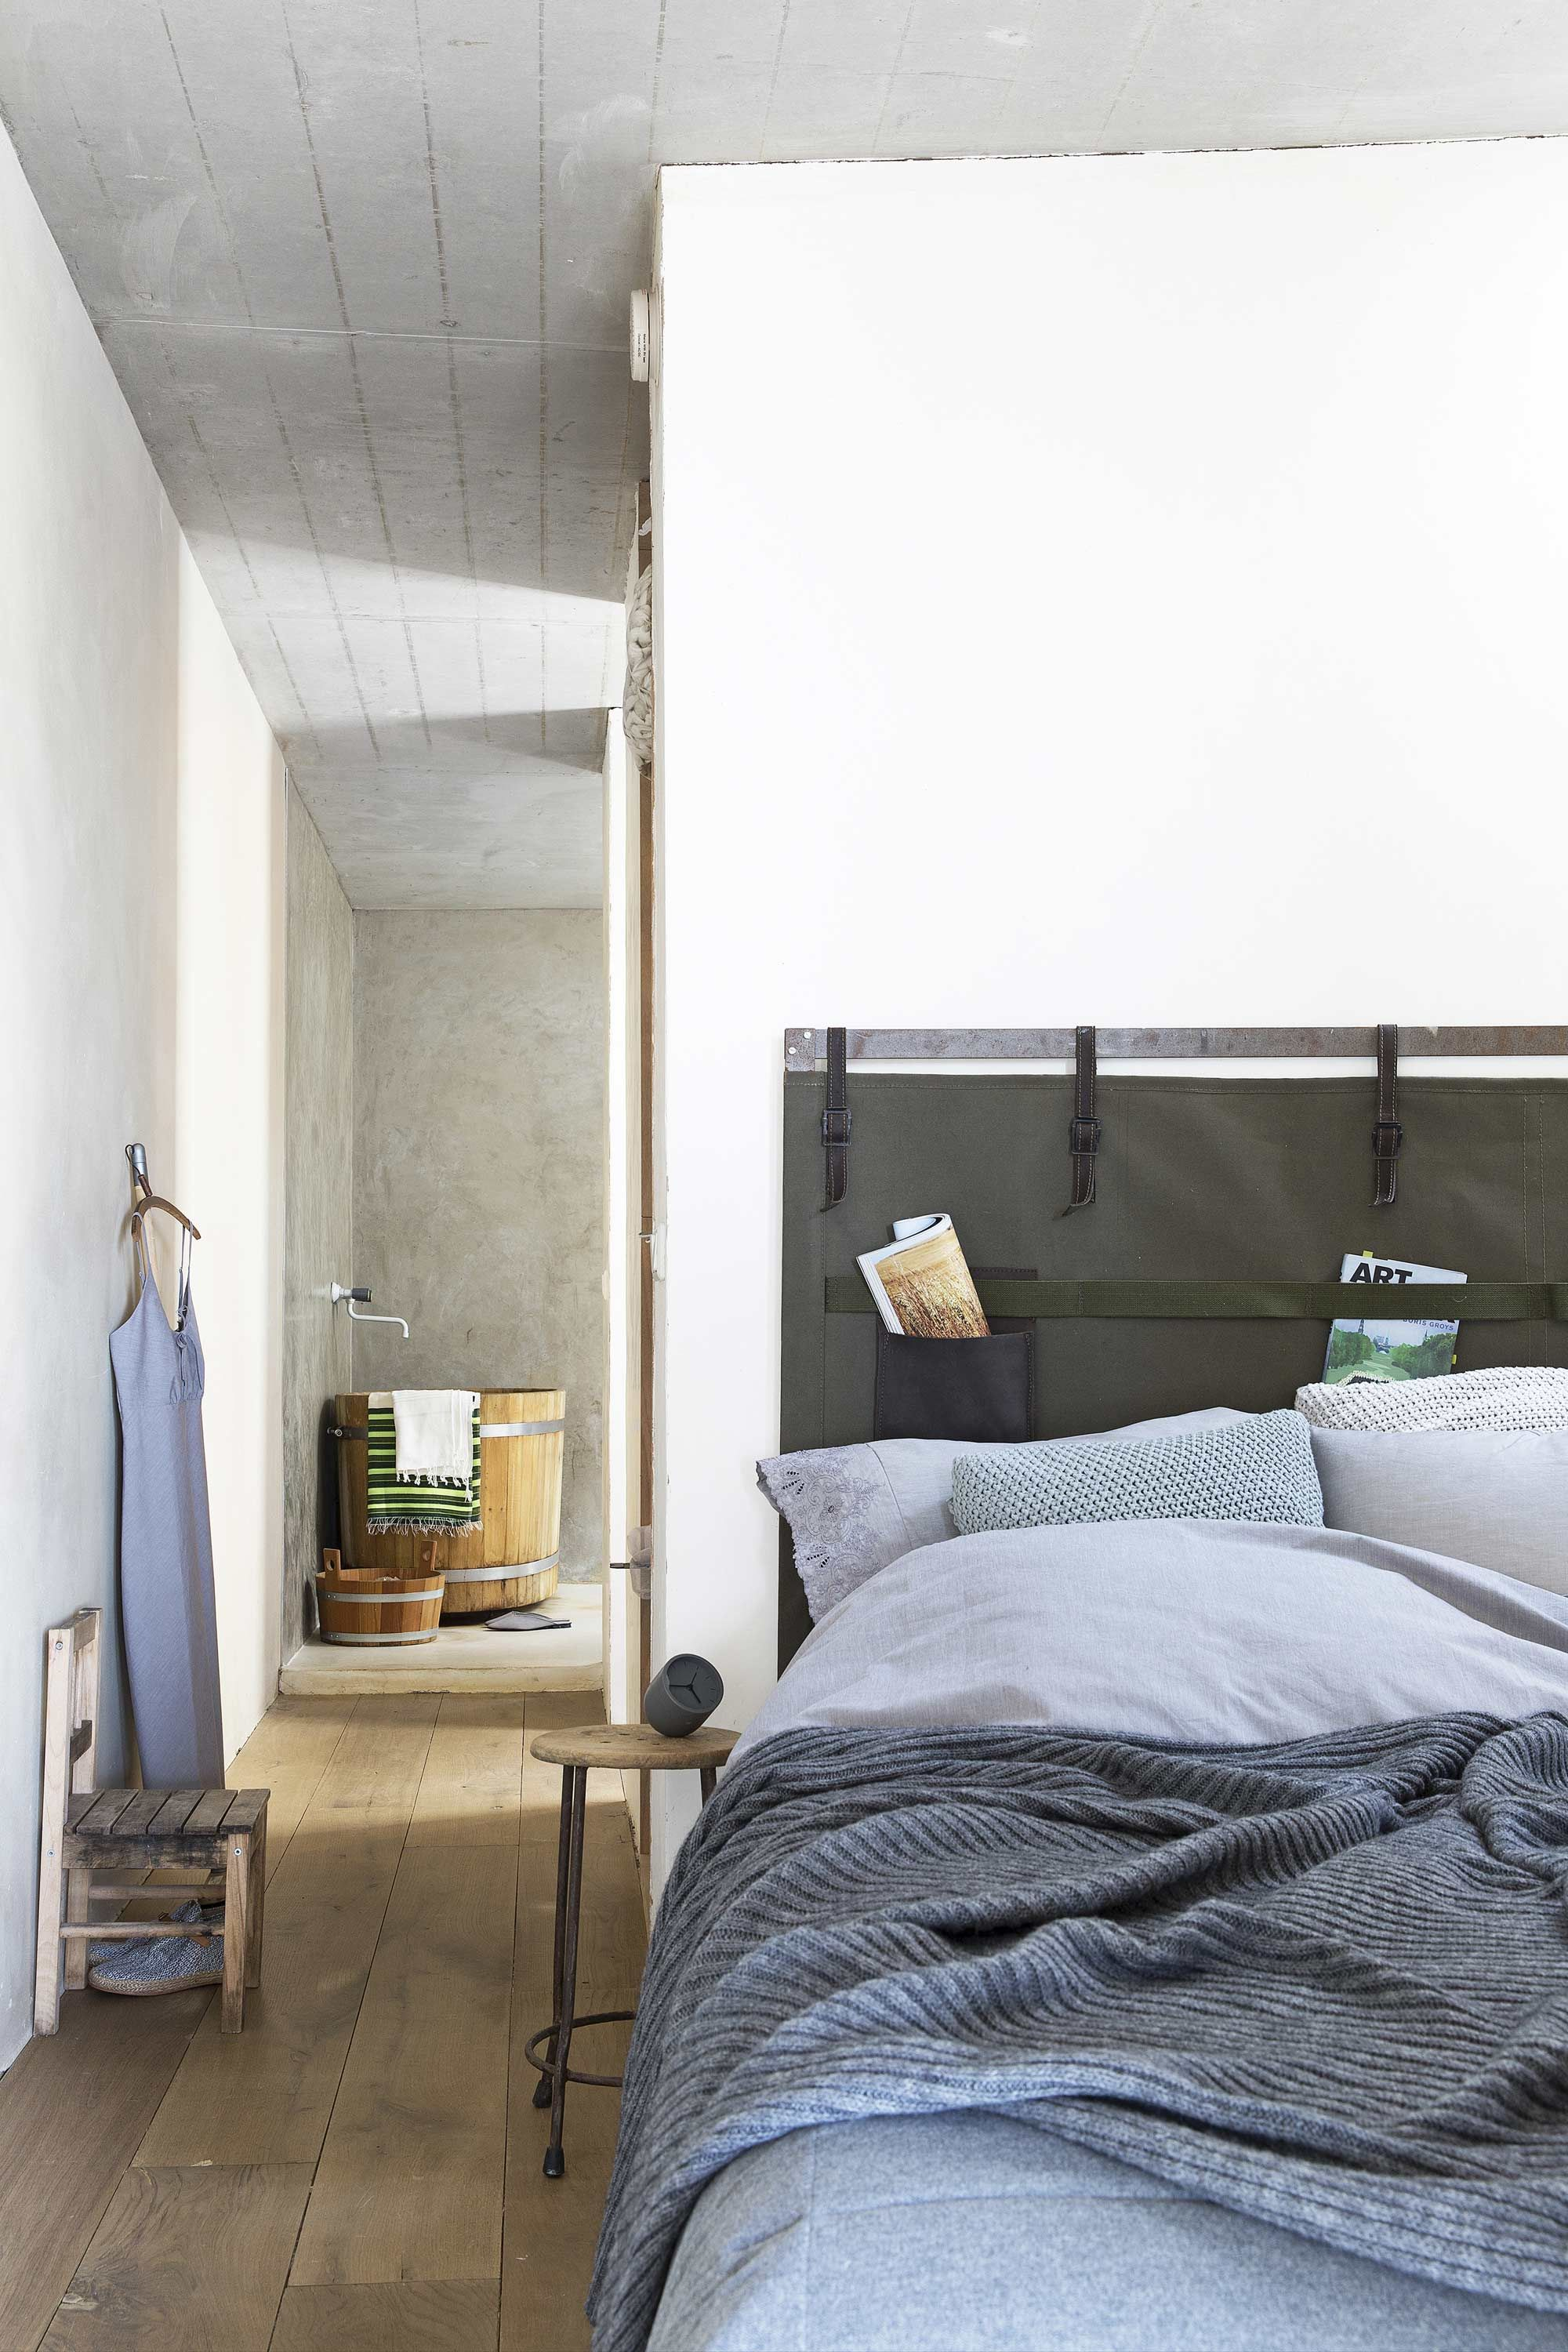 Slaapkamer | bedroom | vtwonen 08-2016 | photography: Jansje ...